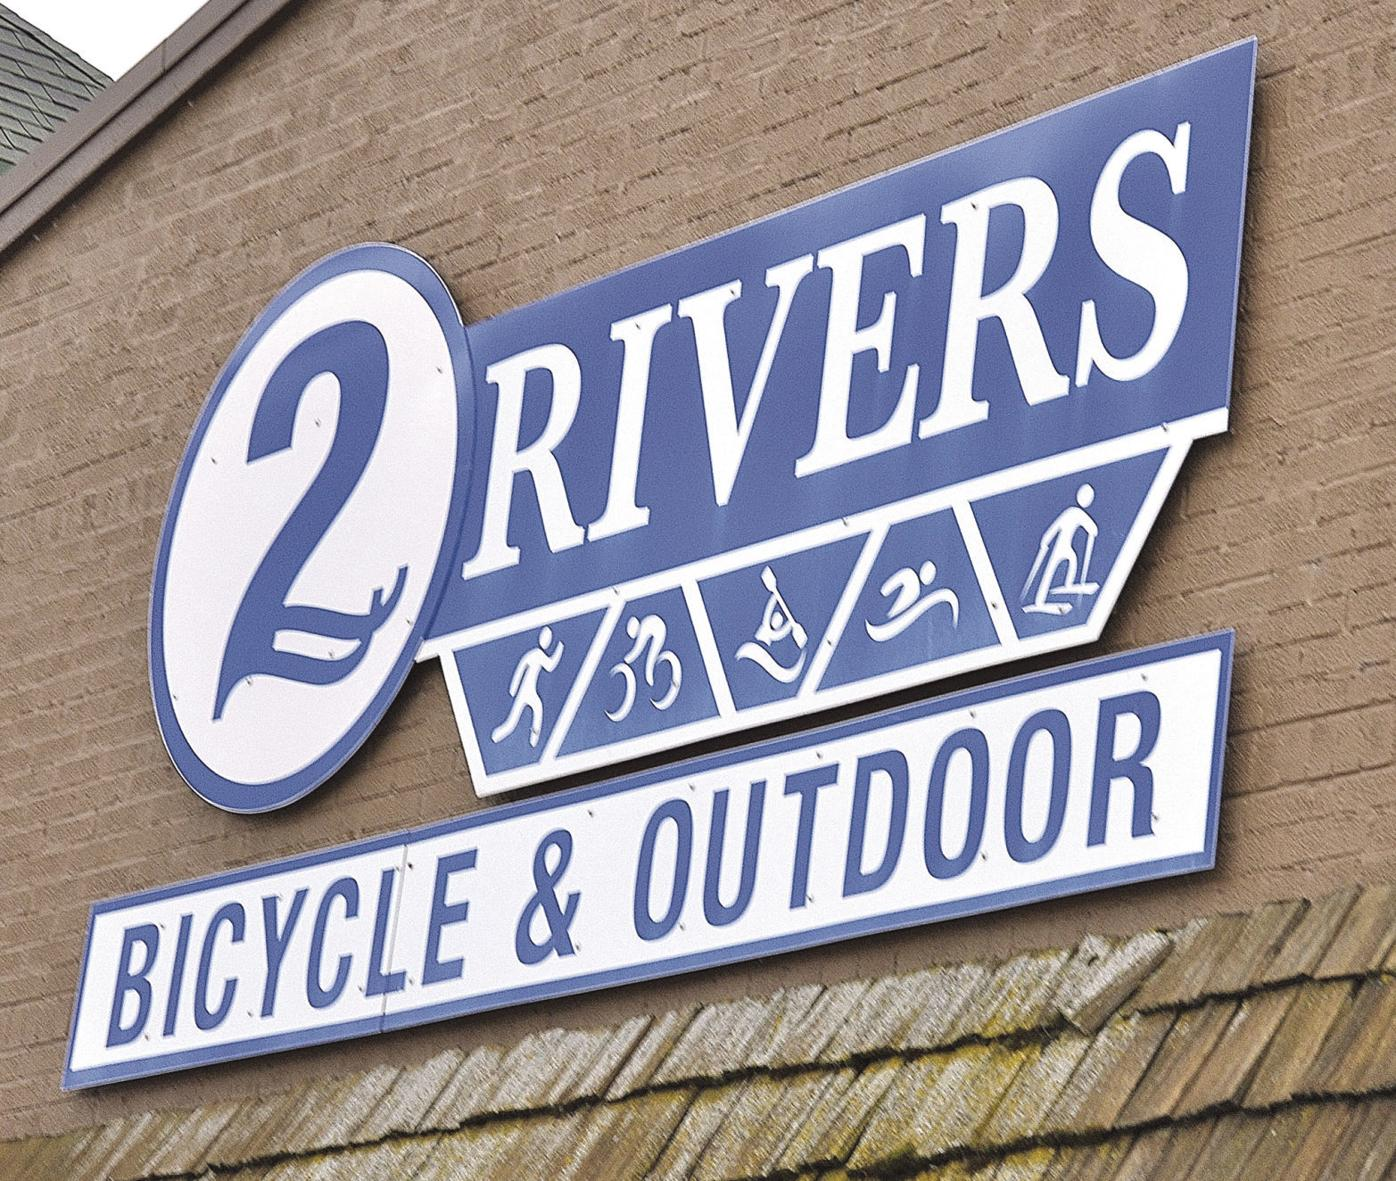 2 Rivers Bicycle & Outdoor